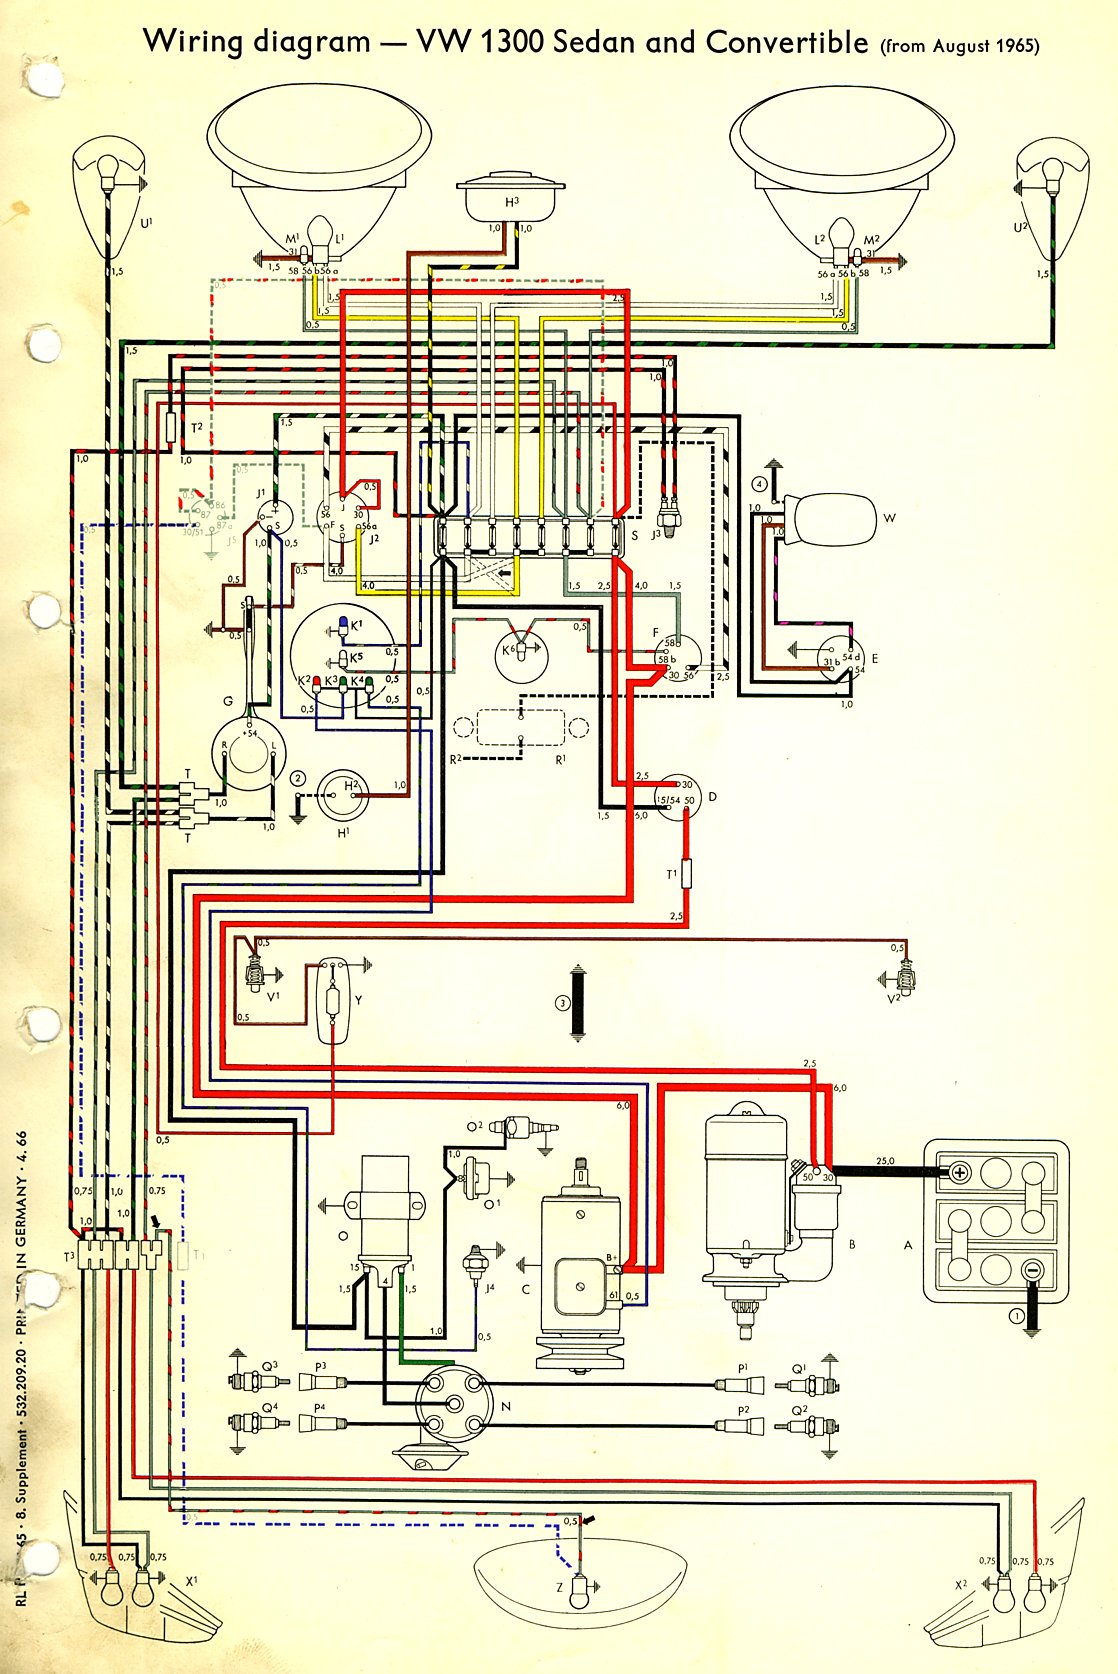 1956 Vw Wiring Diagram Will Be A Thing Yamaha Crypton Z 74 Bug Get Free Image About Beetle Super And